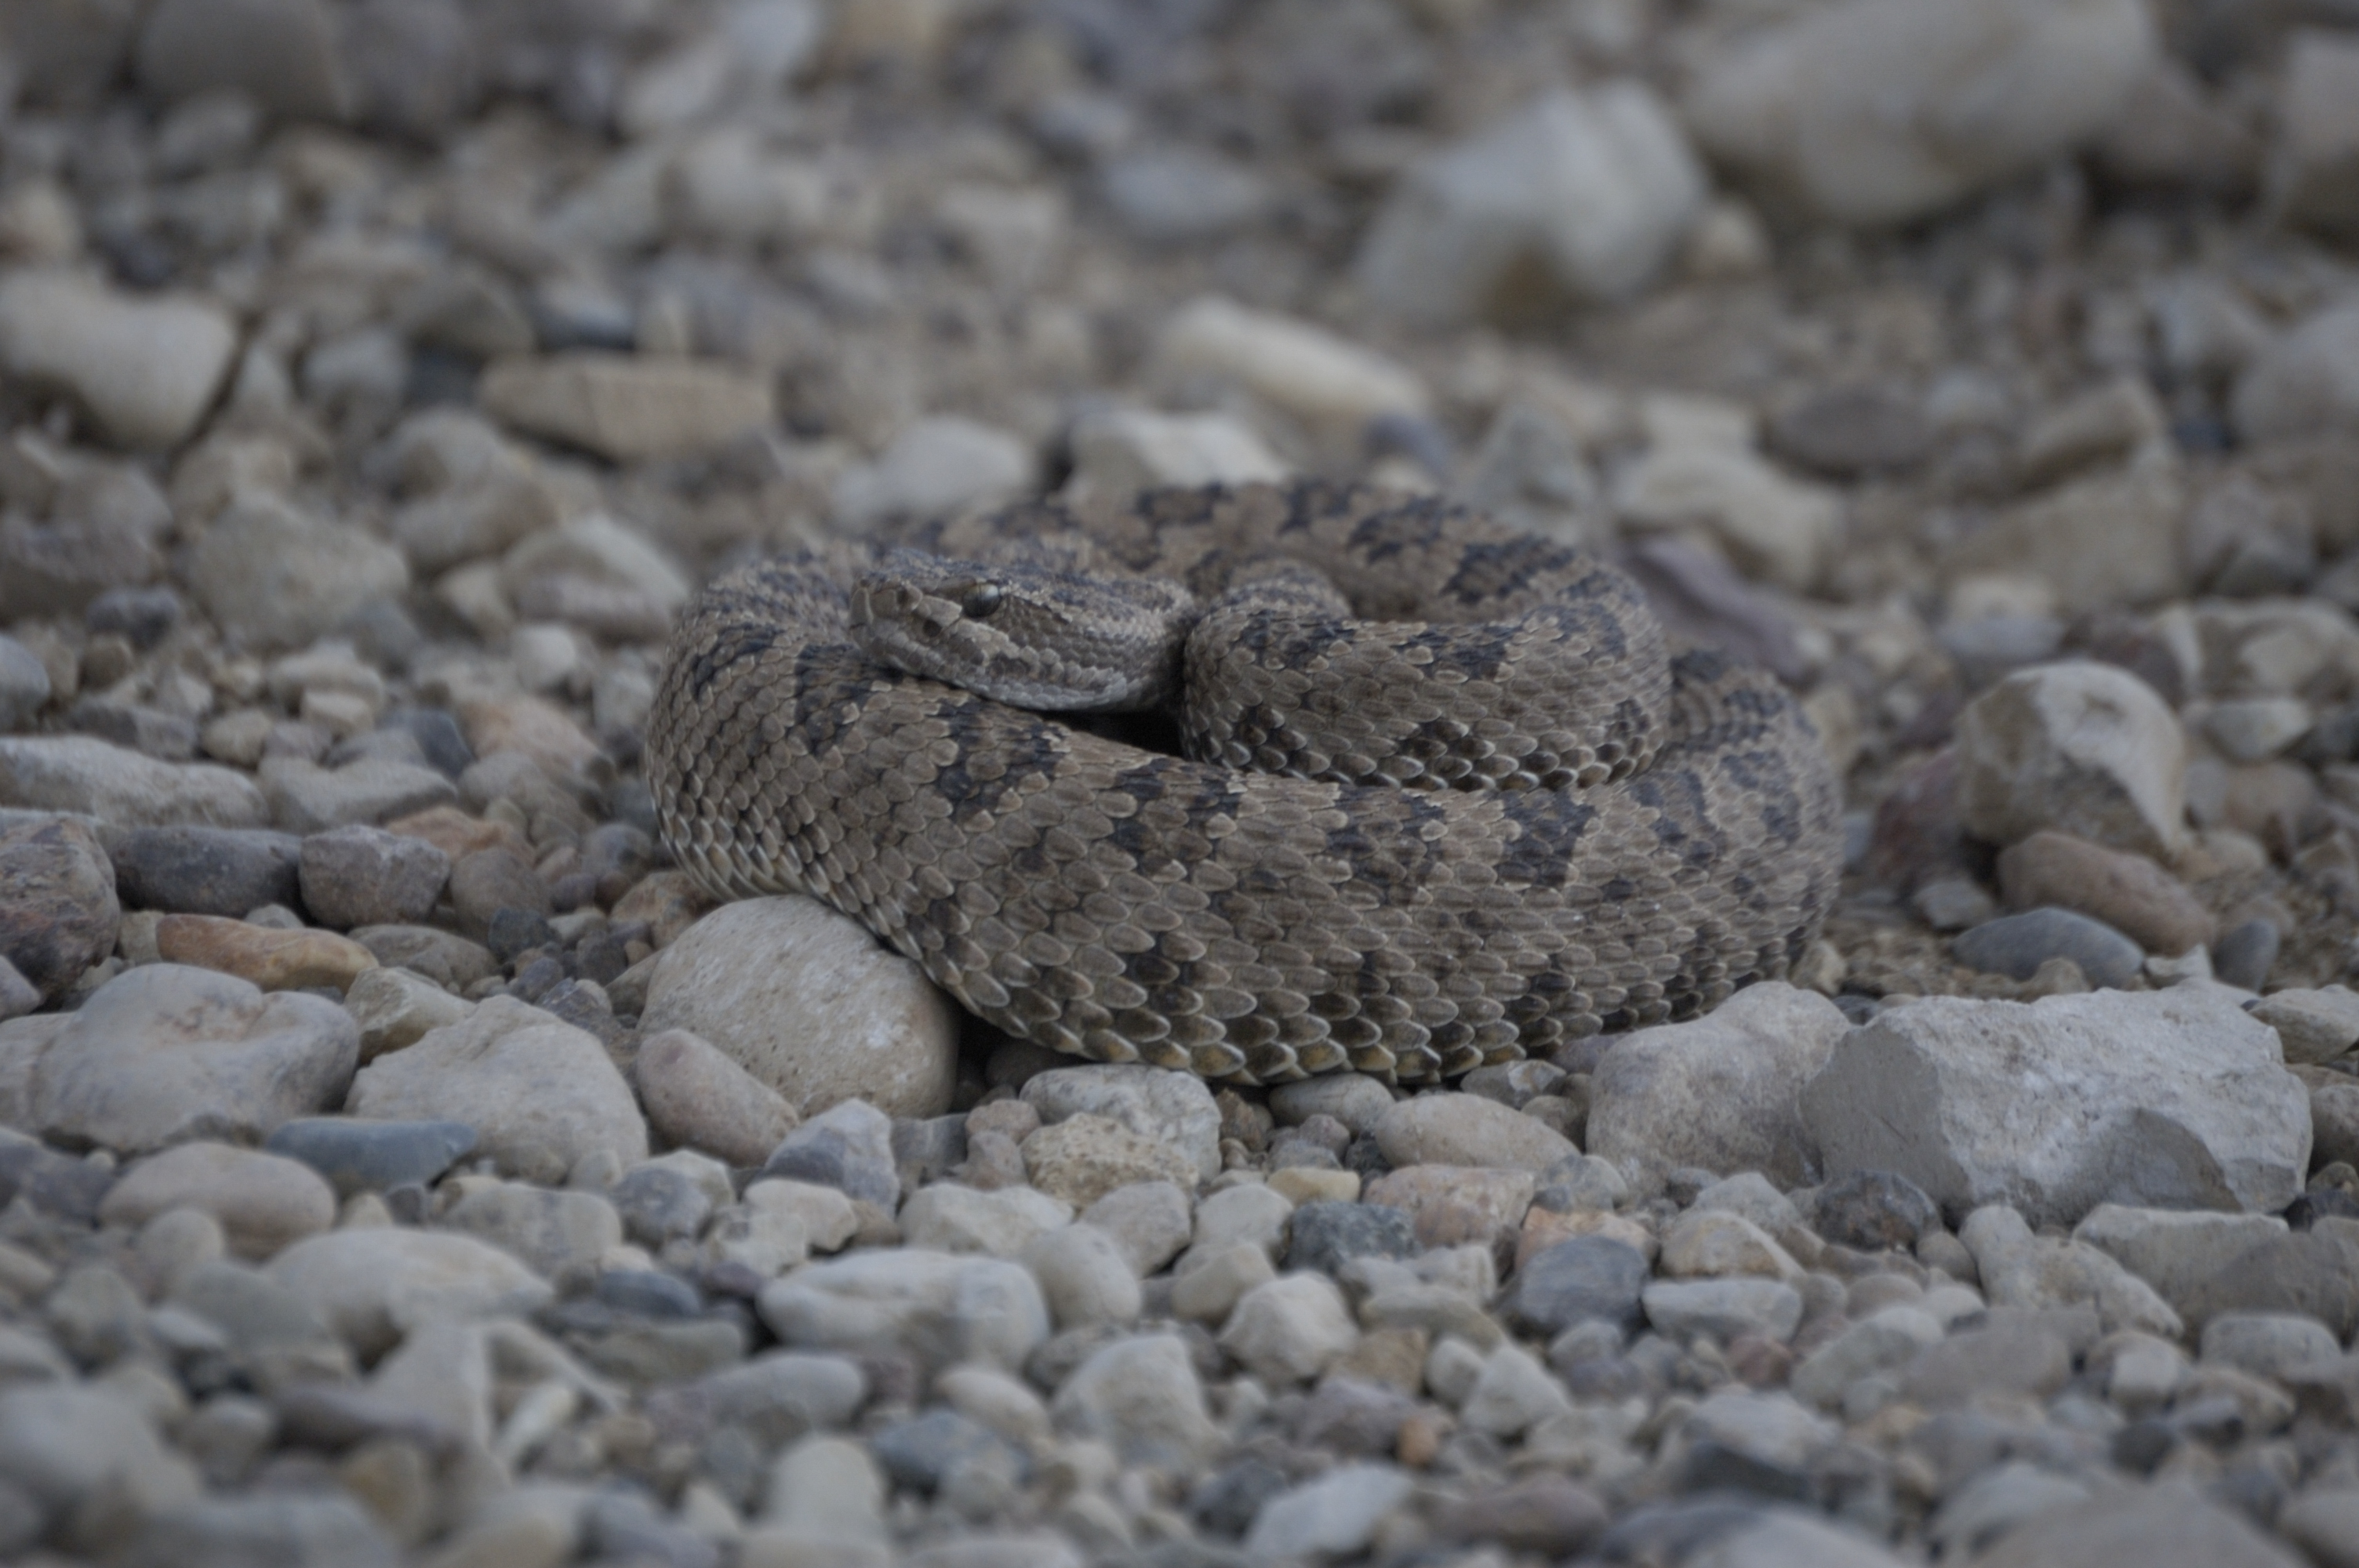 Image of northern pacific rattlesnake